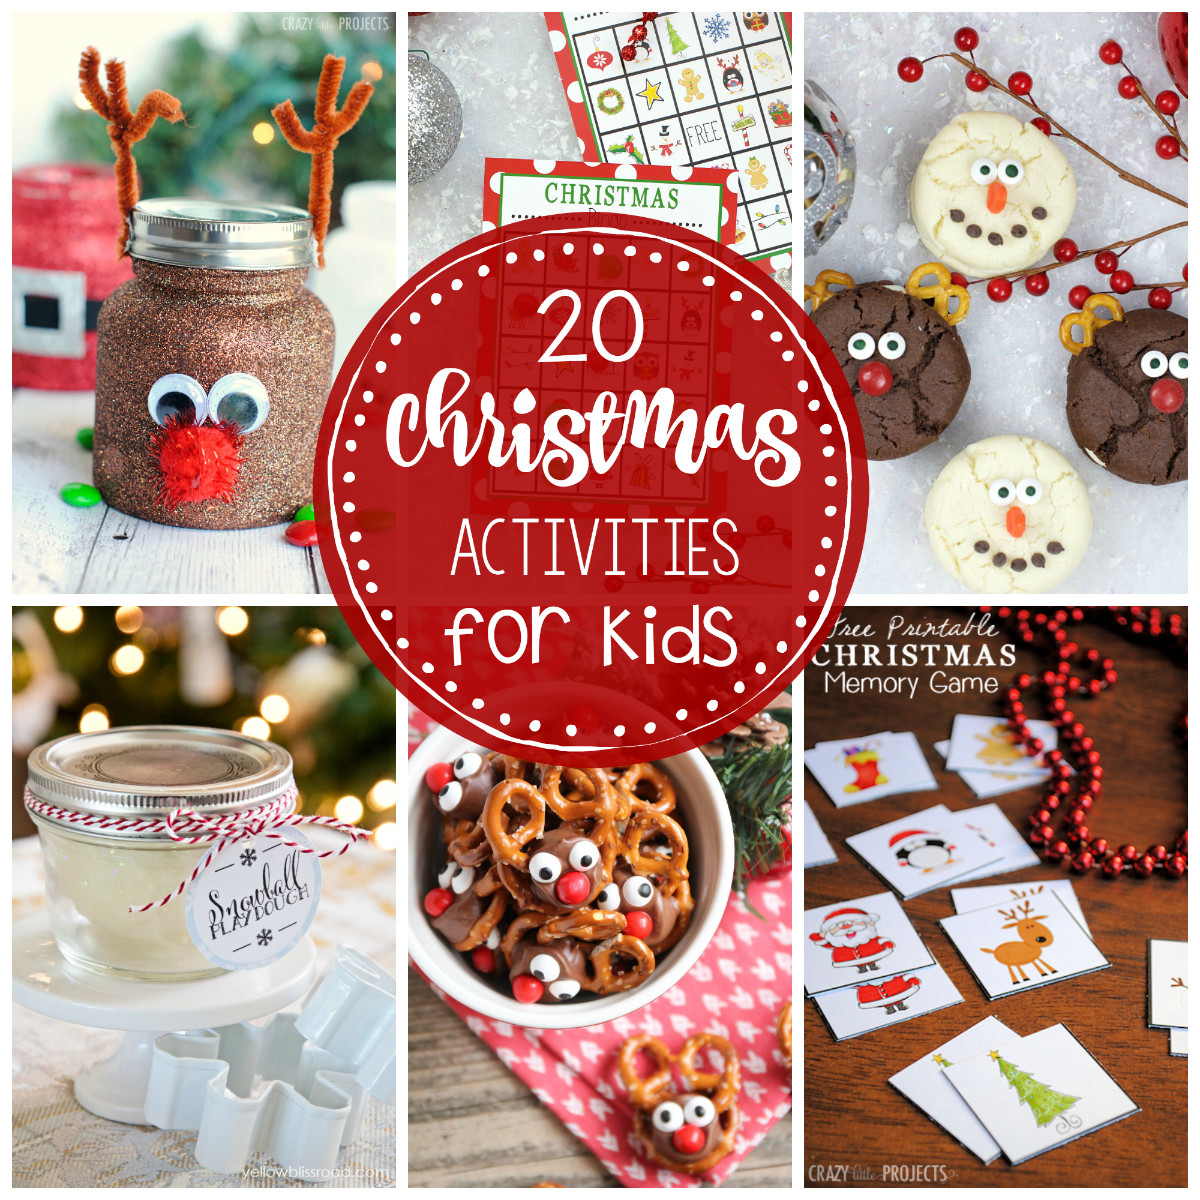 Holiday Projects For Kids  25 Fun Christmas Activities for Kids Crazy Little Projects